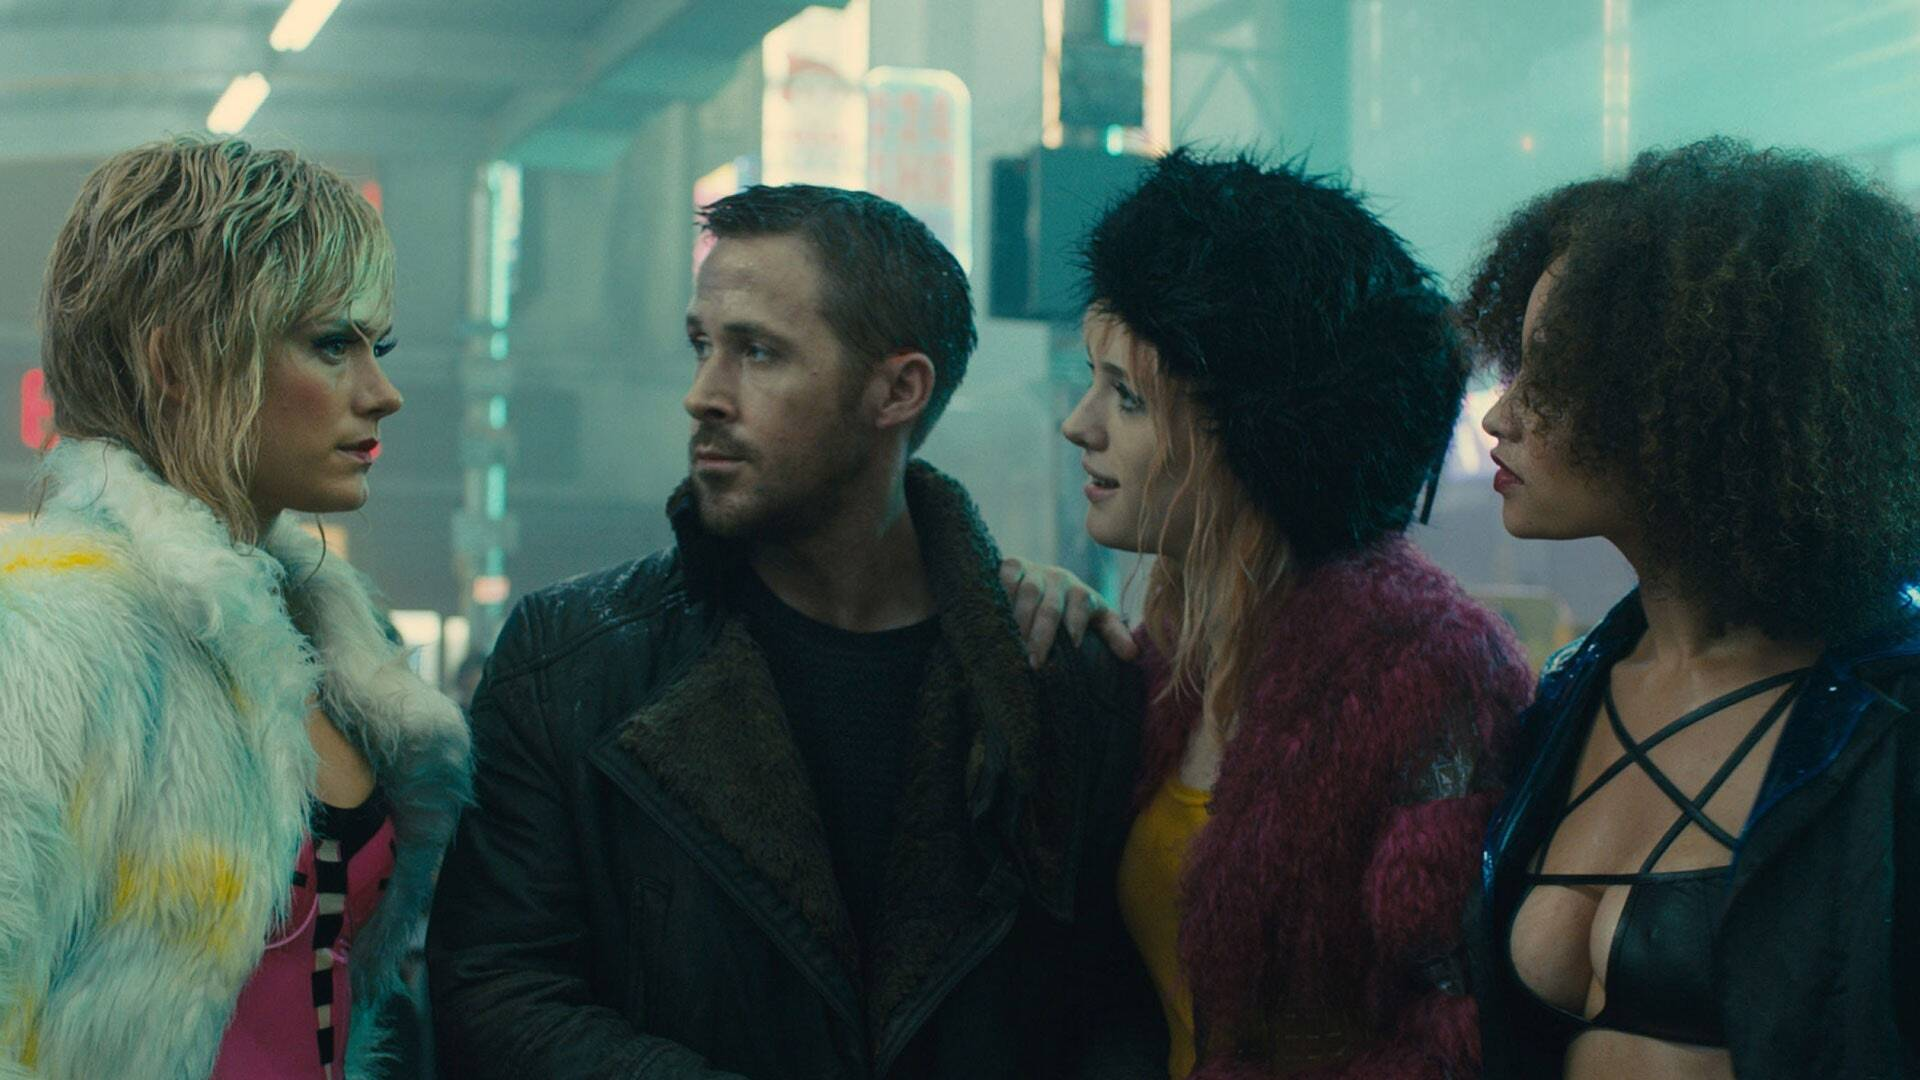 Blade-Runner-2049-costumes-renee-April-Bible-urbaine